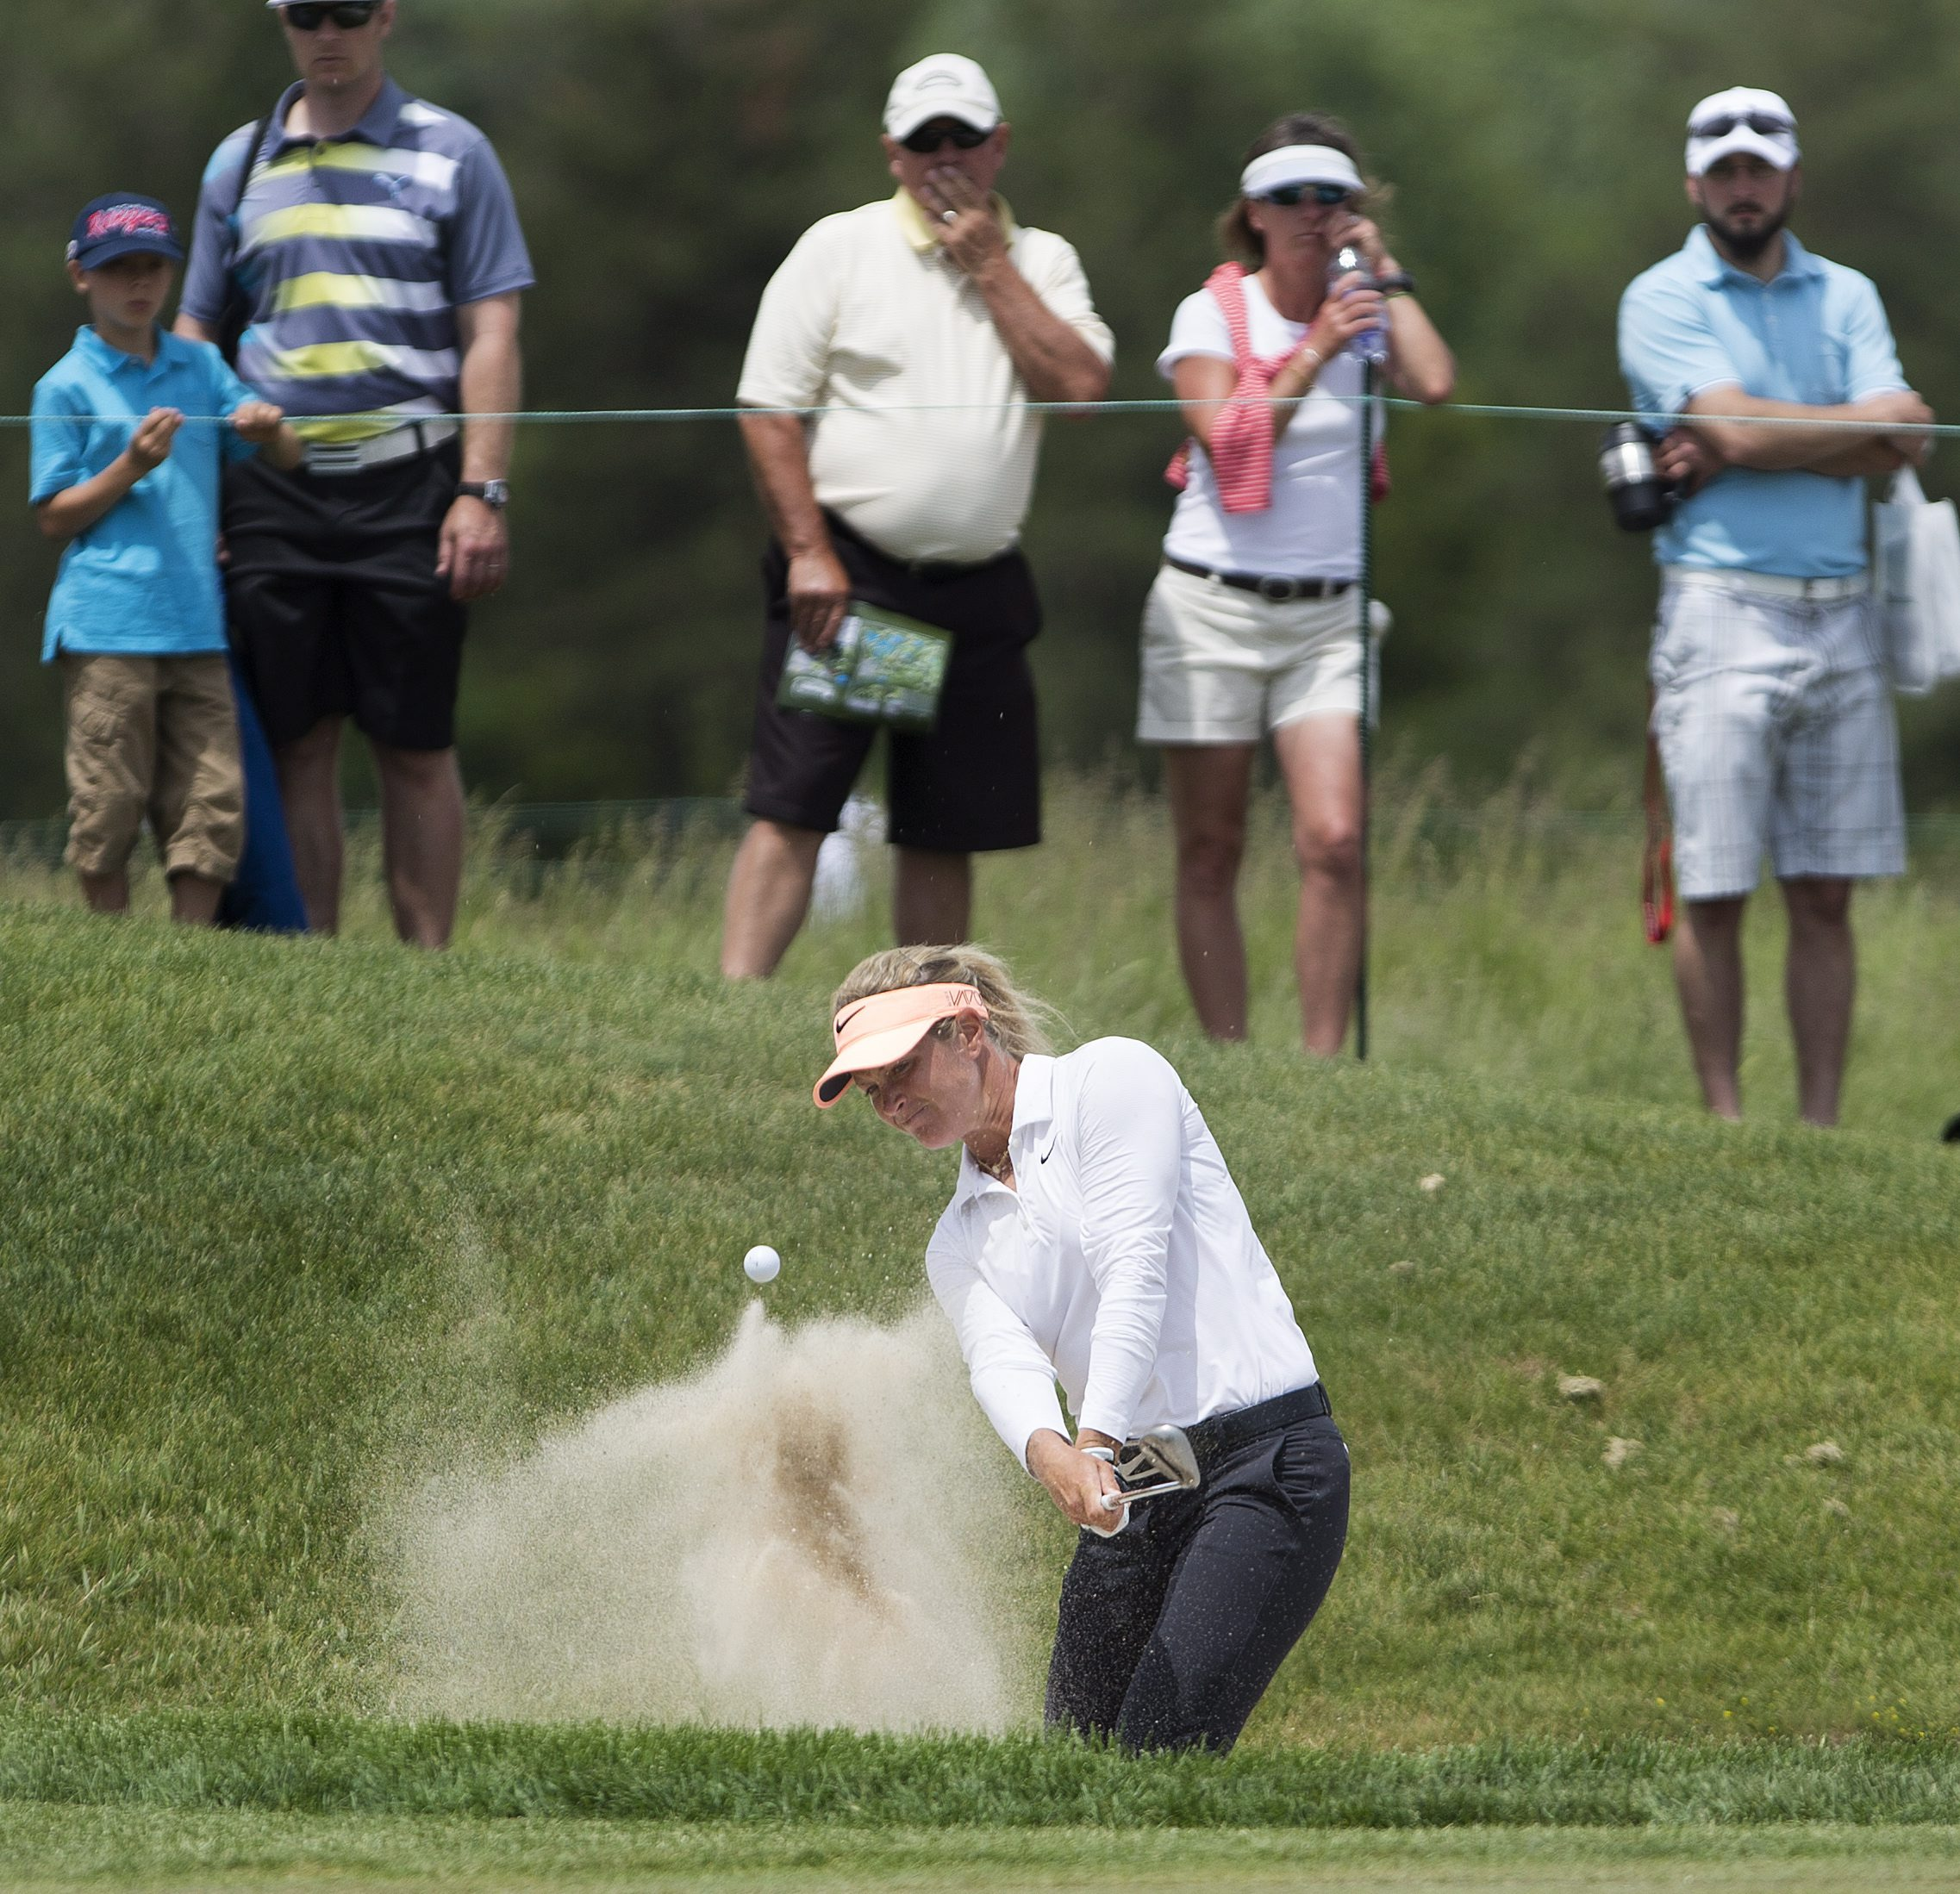 Suzann Pettersen, of Norway, hits out of the biker on the 5th hole during the final round of the 2015 Manulife LPGA Classic in Cambridge, Ontario, Sunday, June 7, 2015. (Peter Power/The Canadian Press via AP) MANDATORY CREDIT